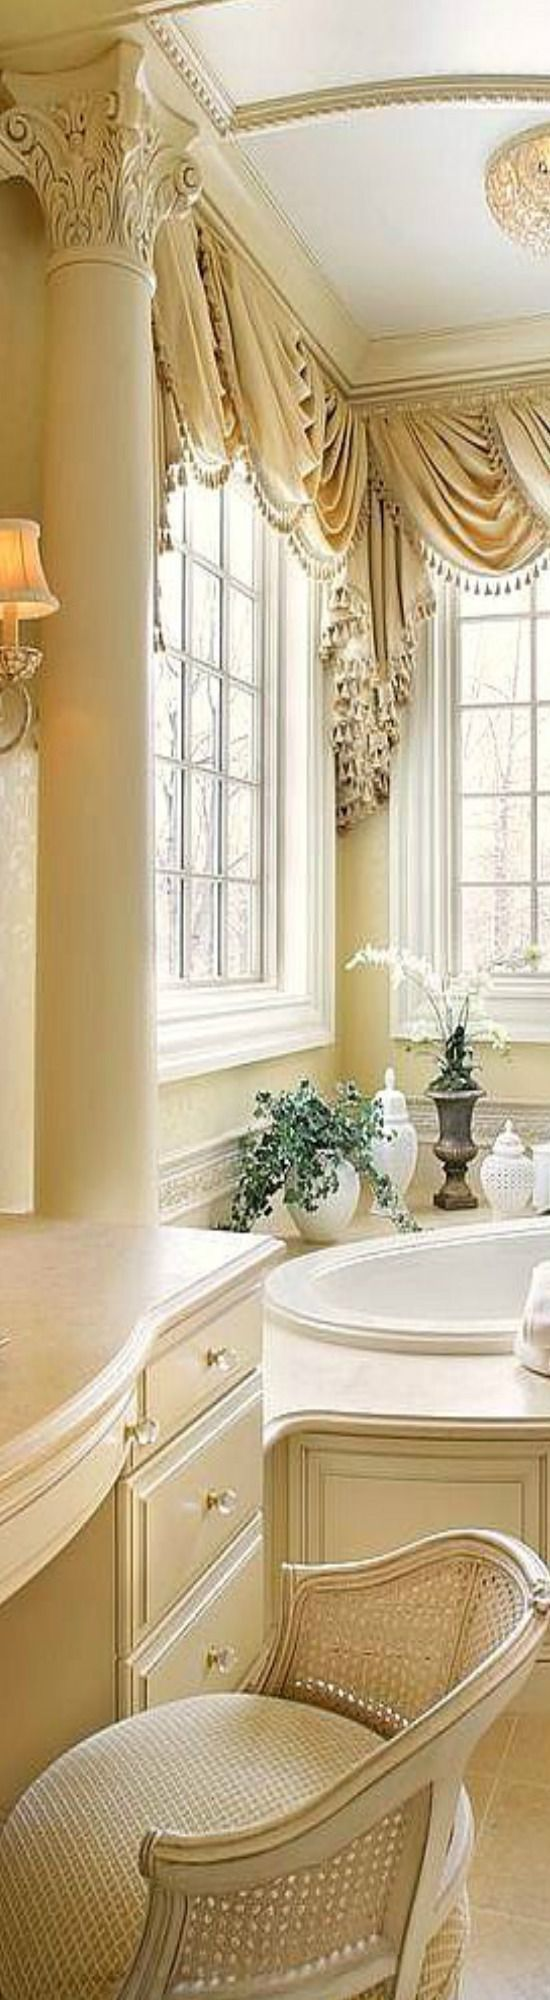 Luxury bathroom curtains - Find This Pin And More On Curtains By Sostasalwa